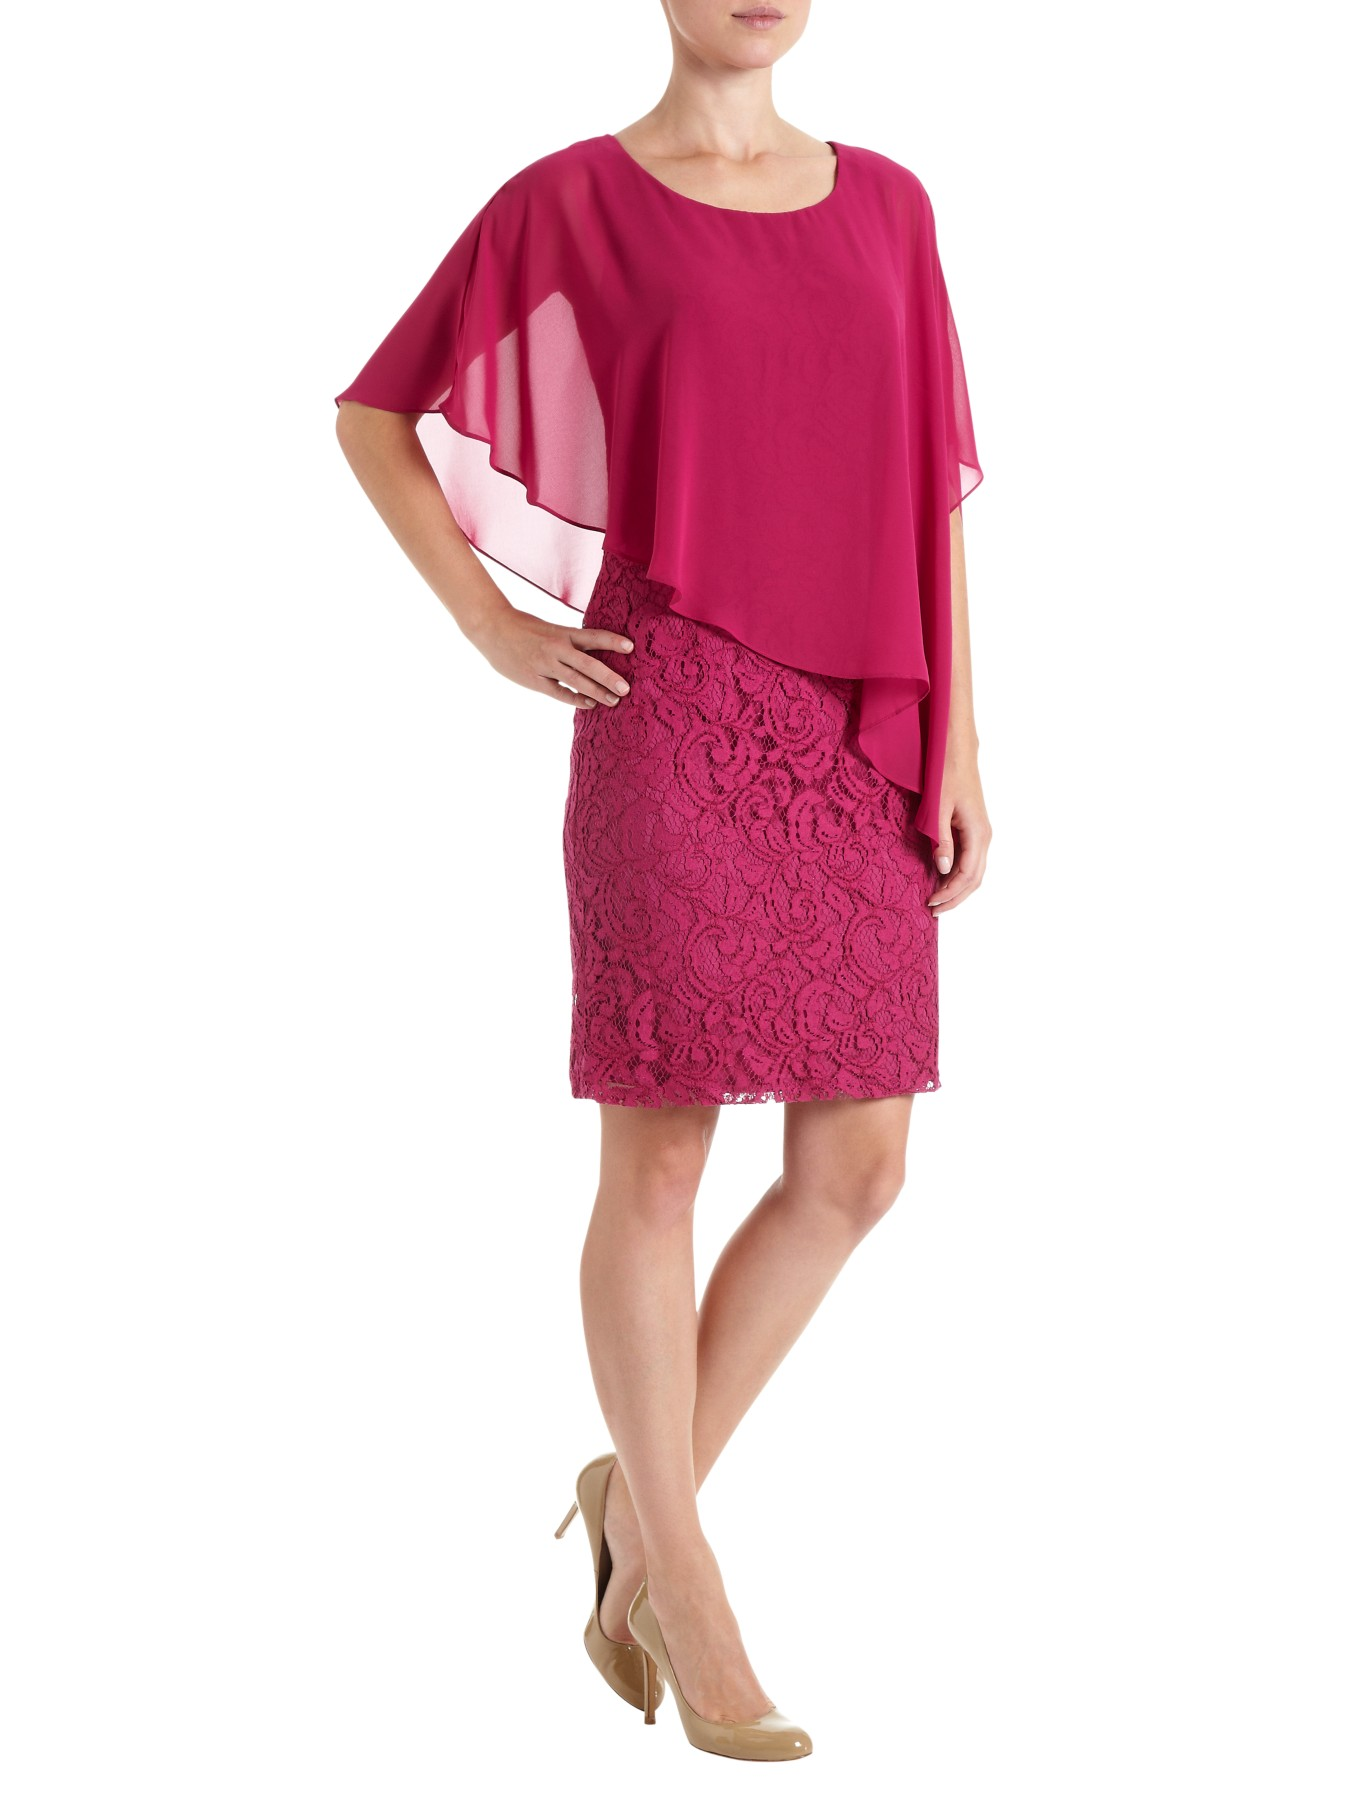 Adrianna papell chiffon drape overlay dress in pink lyst for Adrianna papell wedding guest dresses